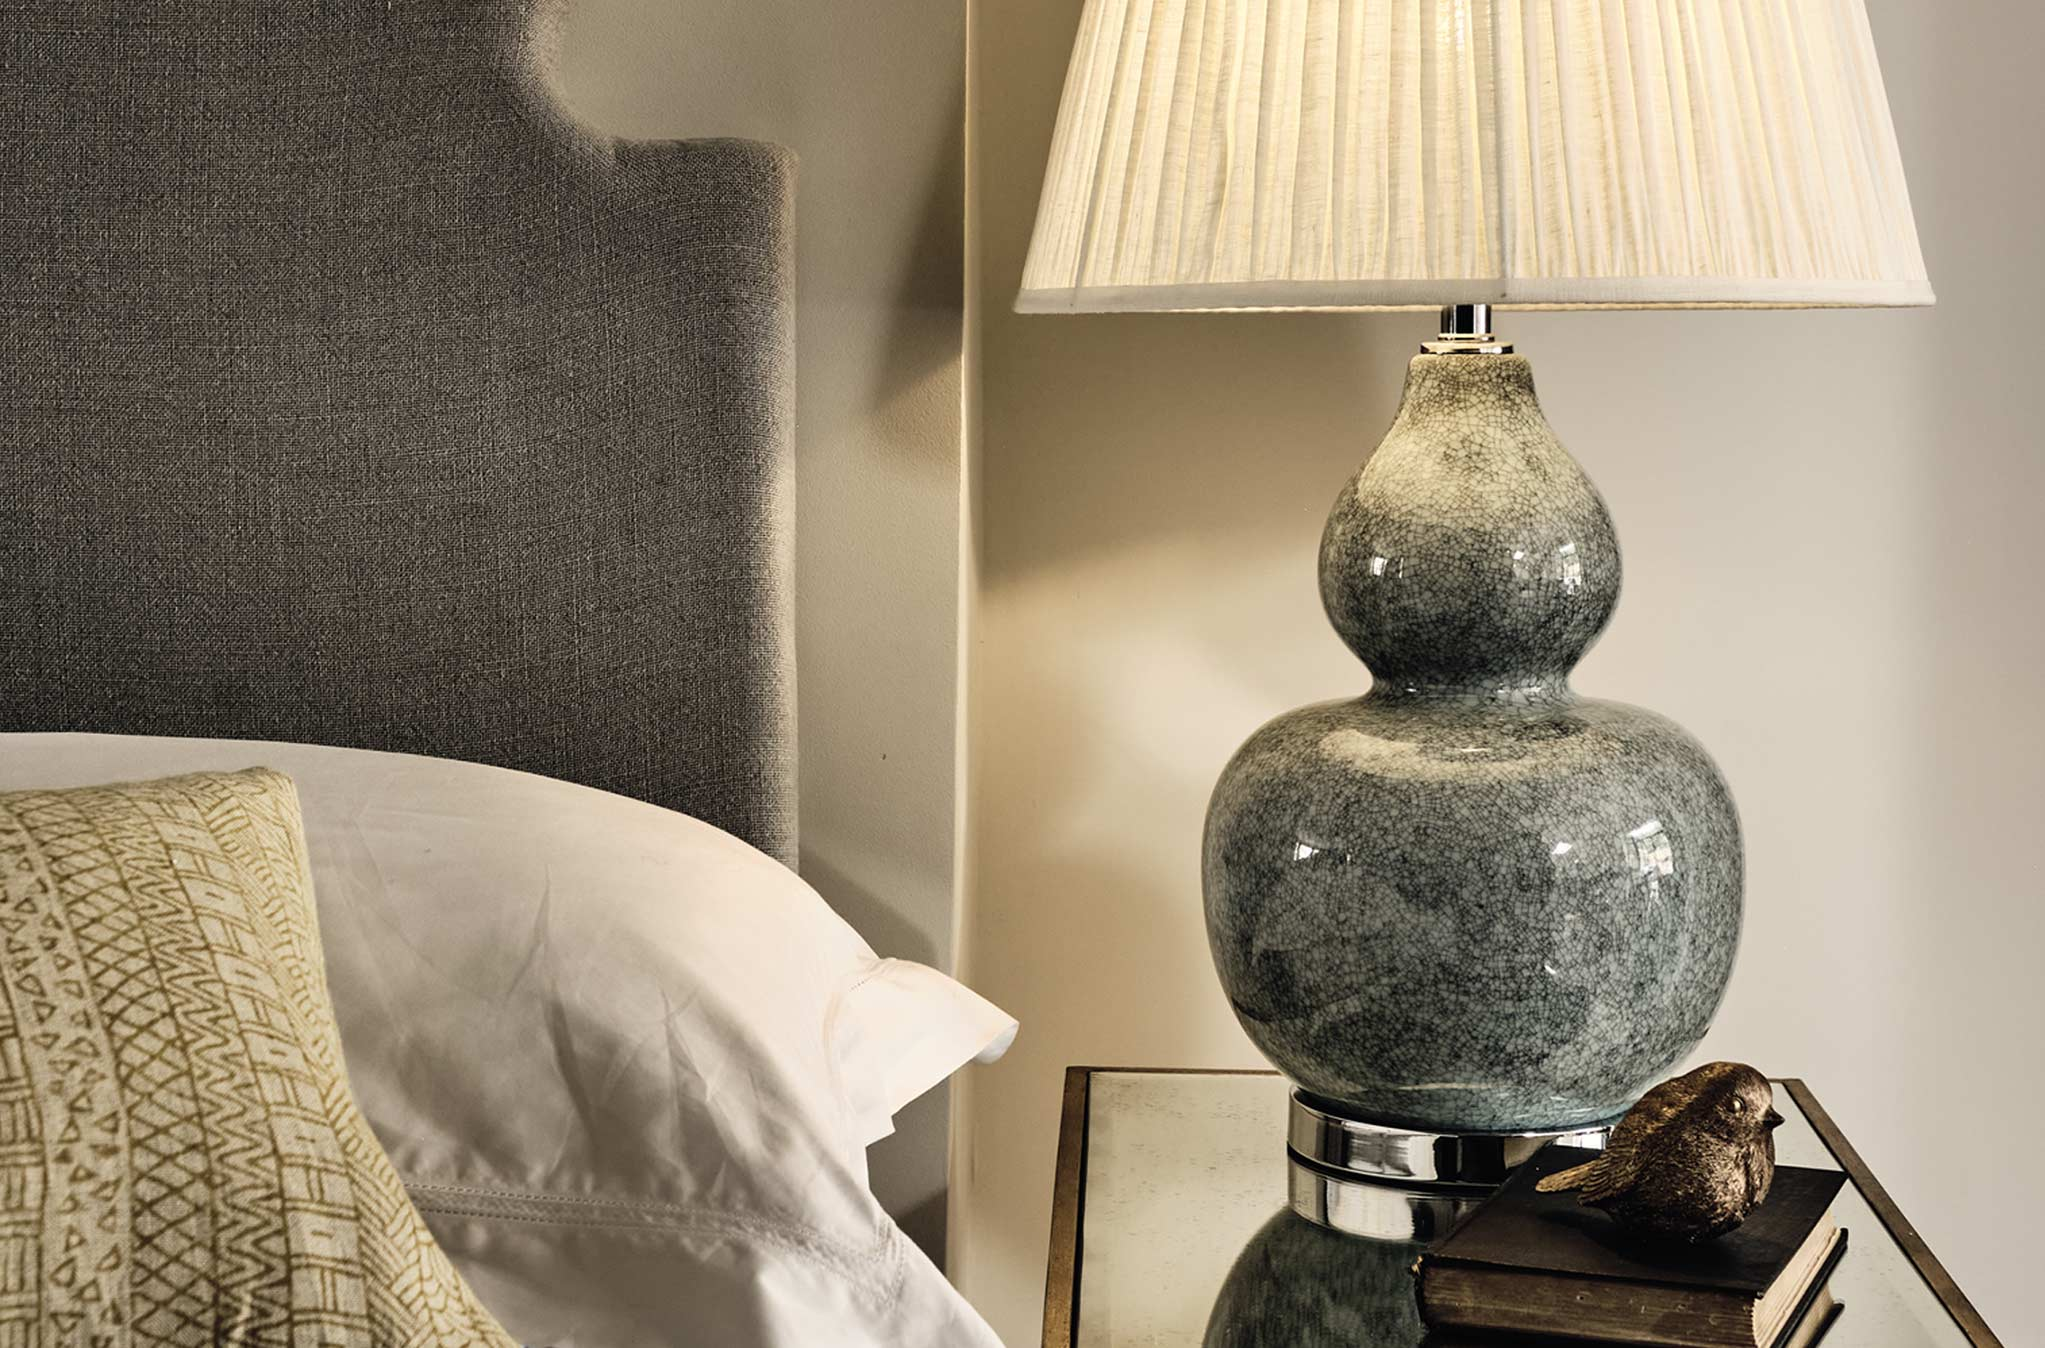 A ceramic grey table lamp on top of a glass side table